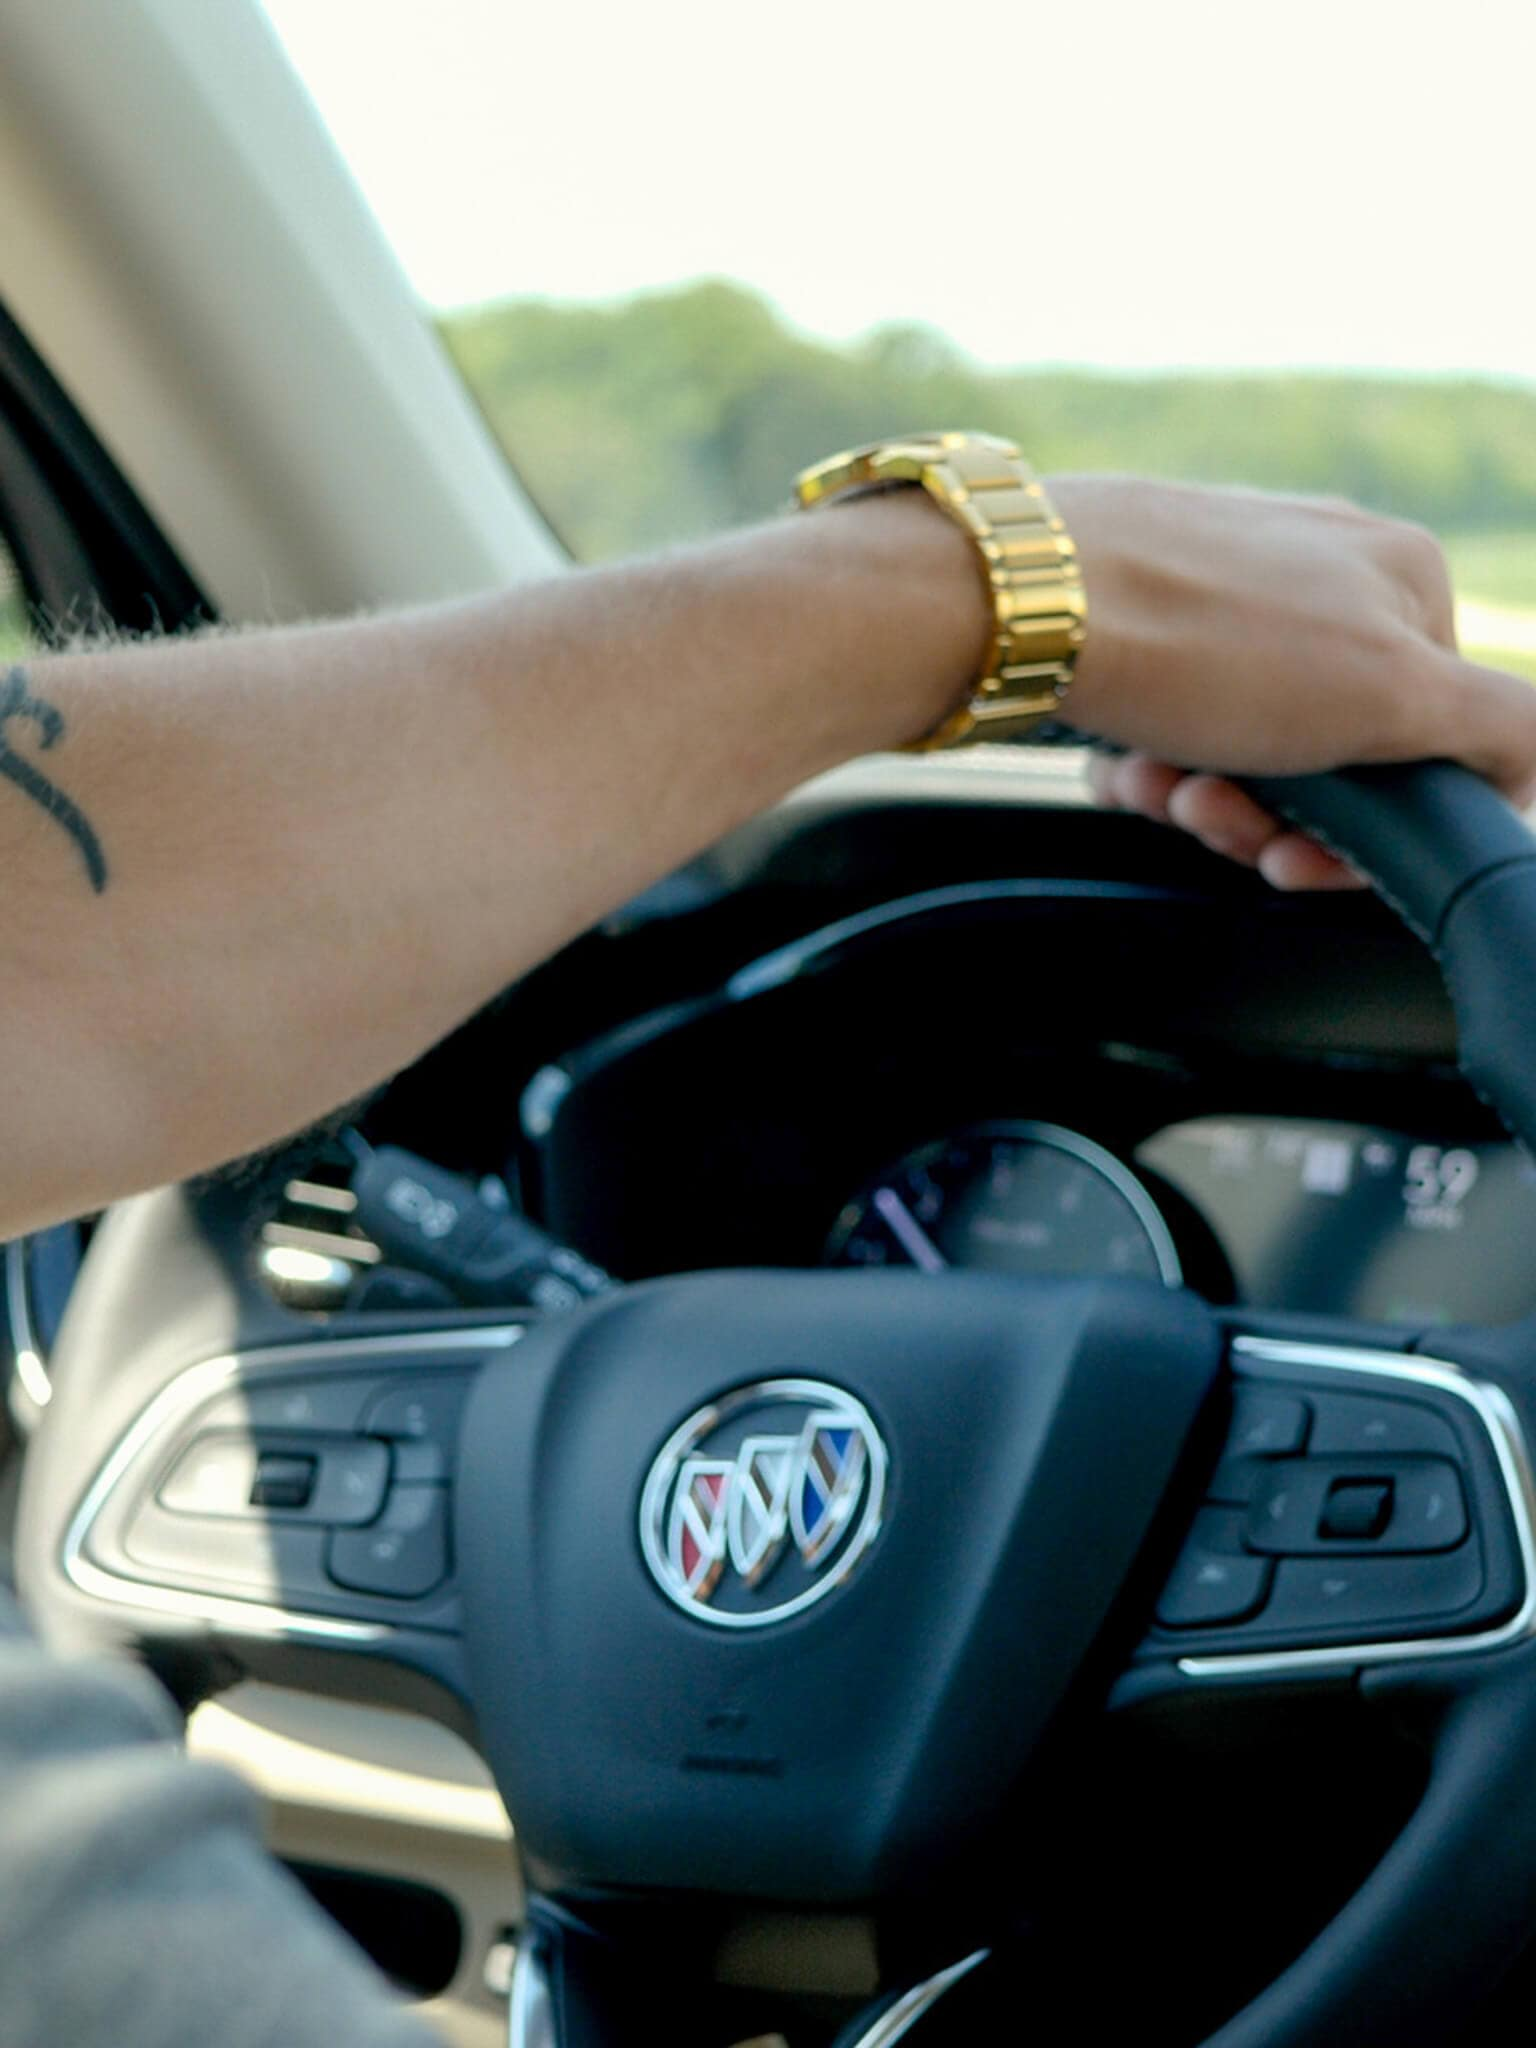 Man steering a Buick Envision from Buick GMC of Rochester